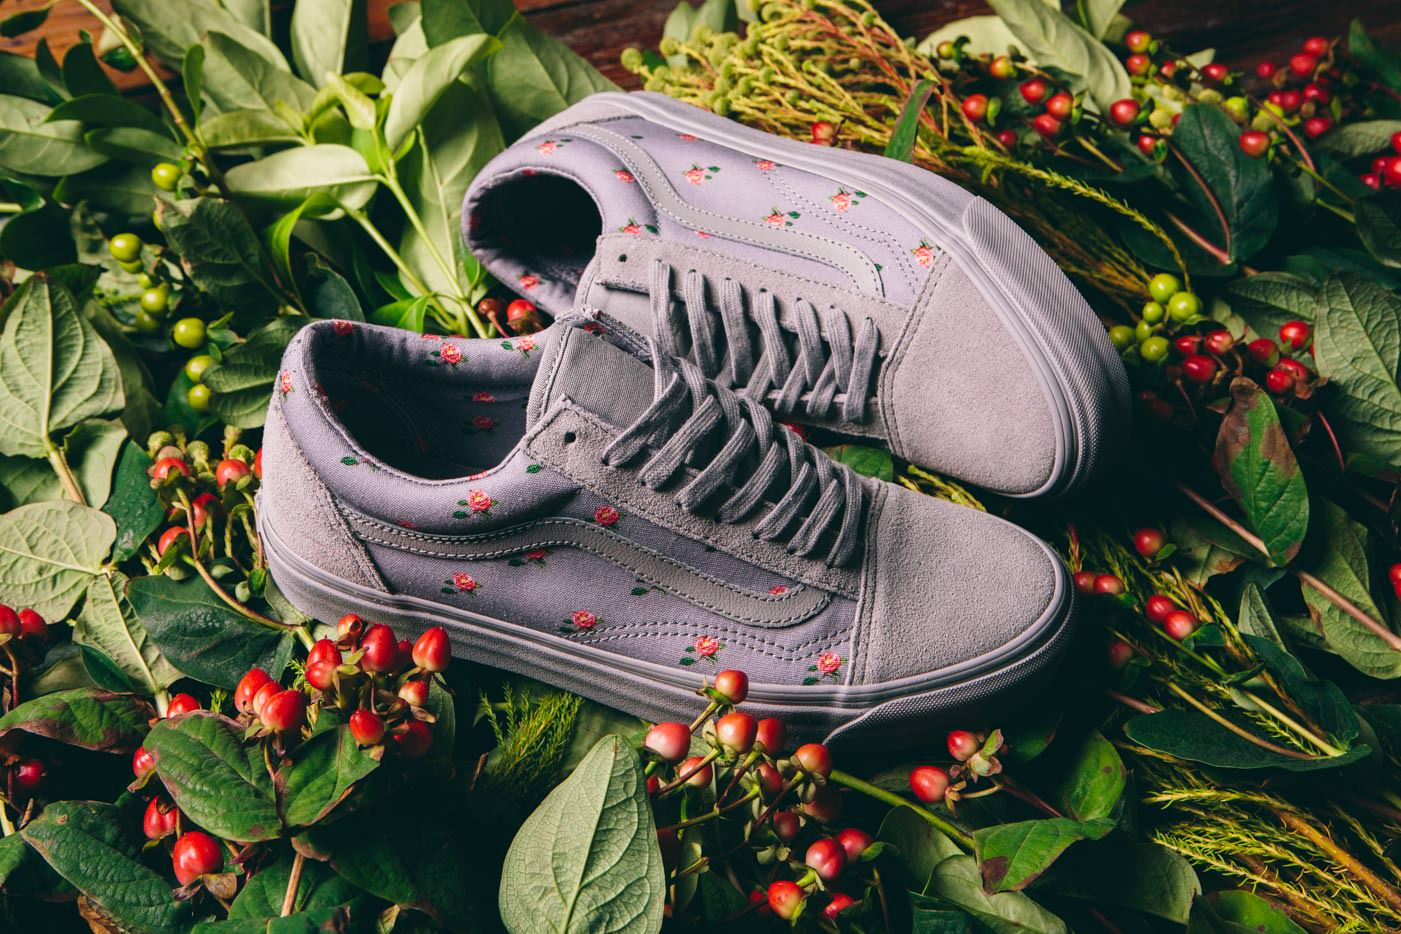 c14a06bf1631fc VANS X Undercover  A Soft Take On Skate From The Premium Japanese ...